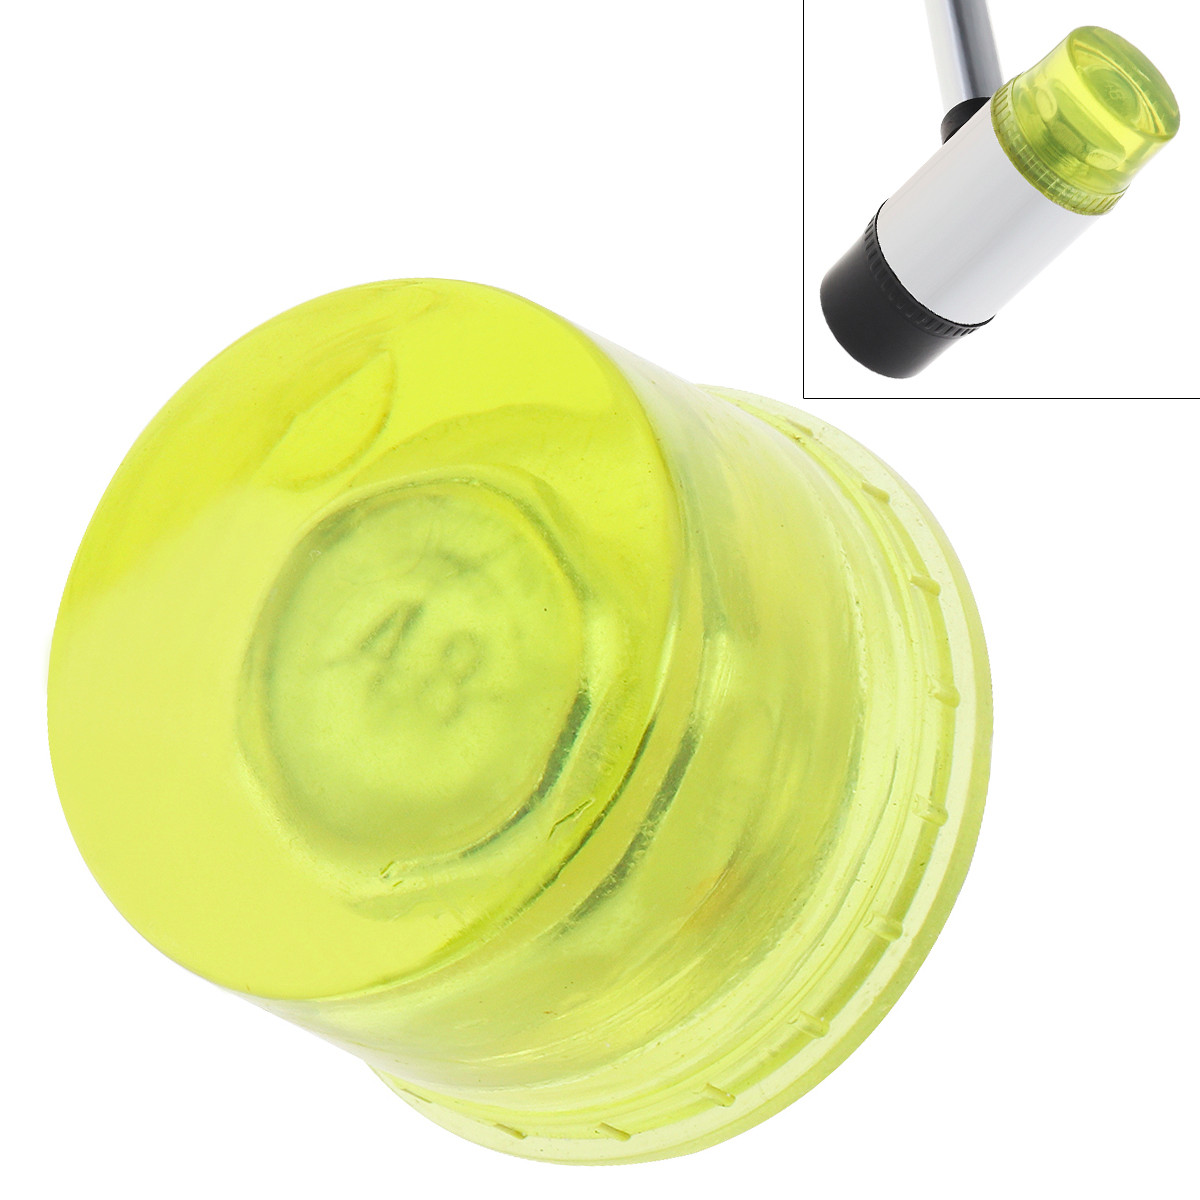 30mm 35mm 40mm Rubber Hammer Head Double Faced Work Glazing Window Beads Hammer with Replaceable Nylon Hammer Head Mallet Tool